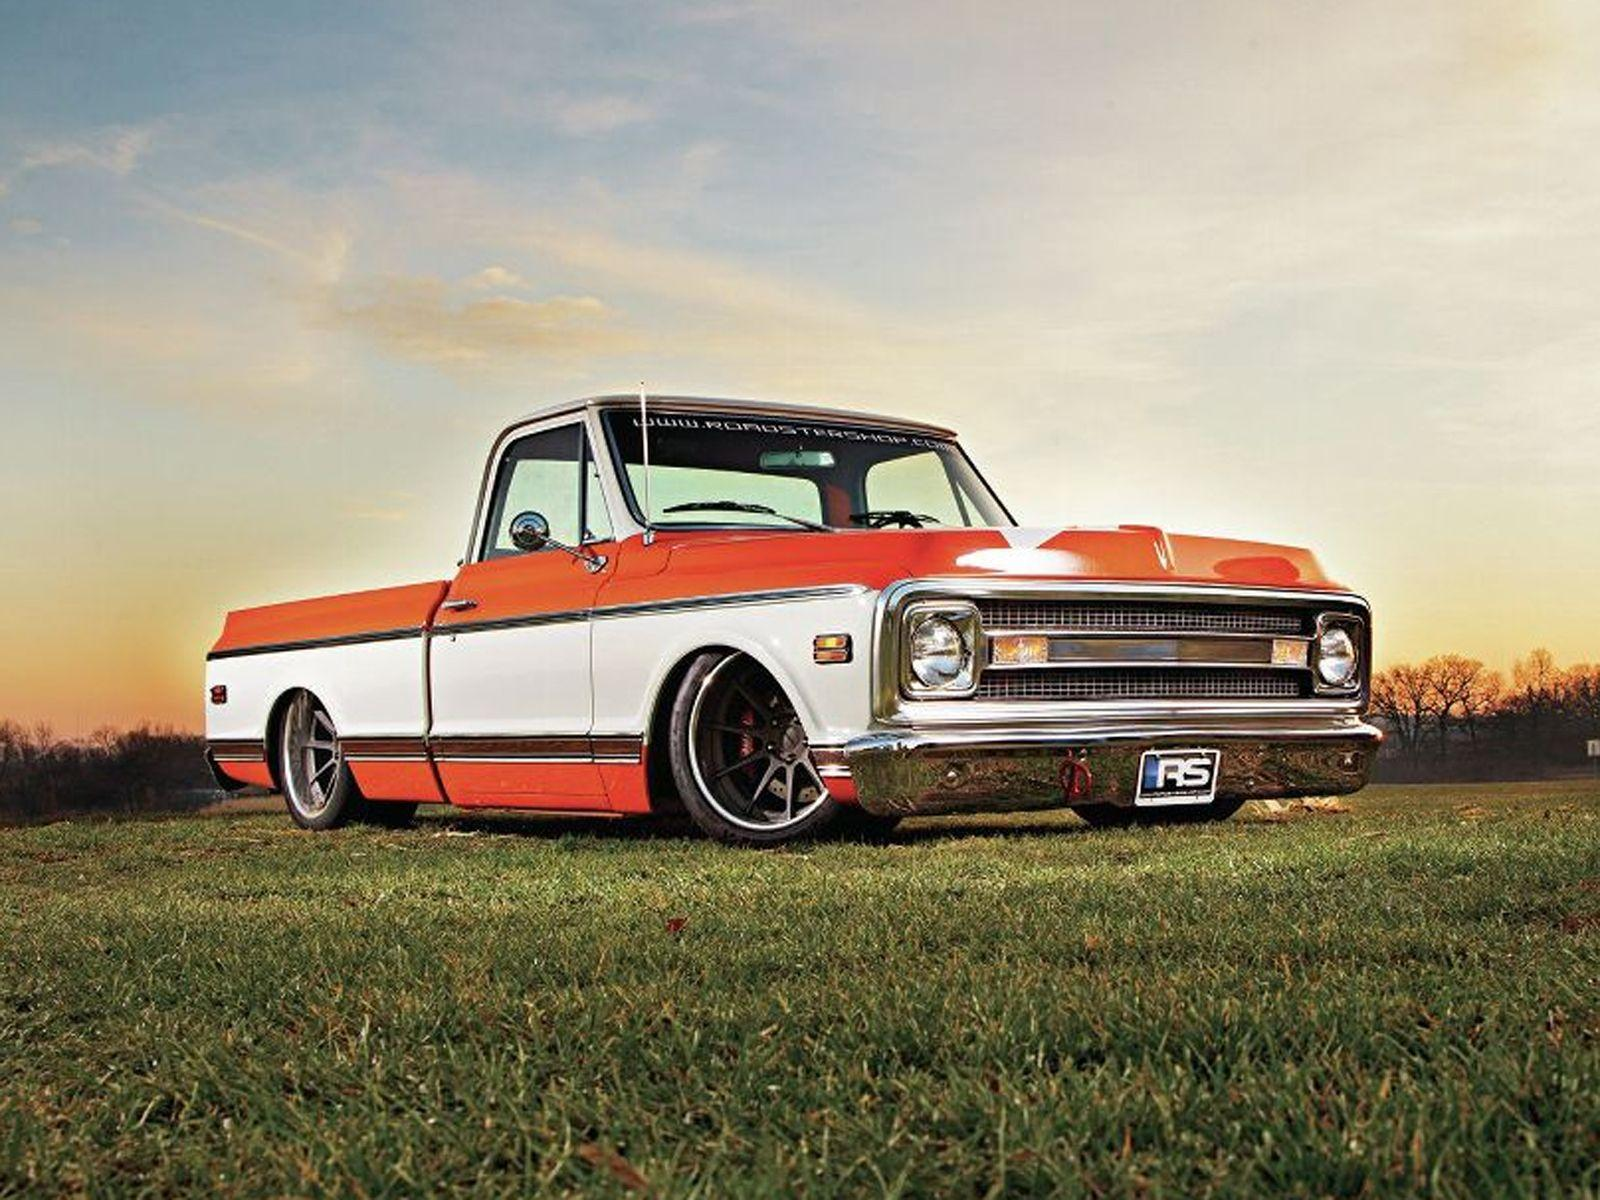 Images Of Chevy Pickup Truck Wallpaper Spacehero 1955 Ford F100 Screensaver Wallpapers Cave